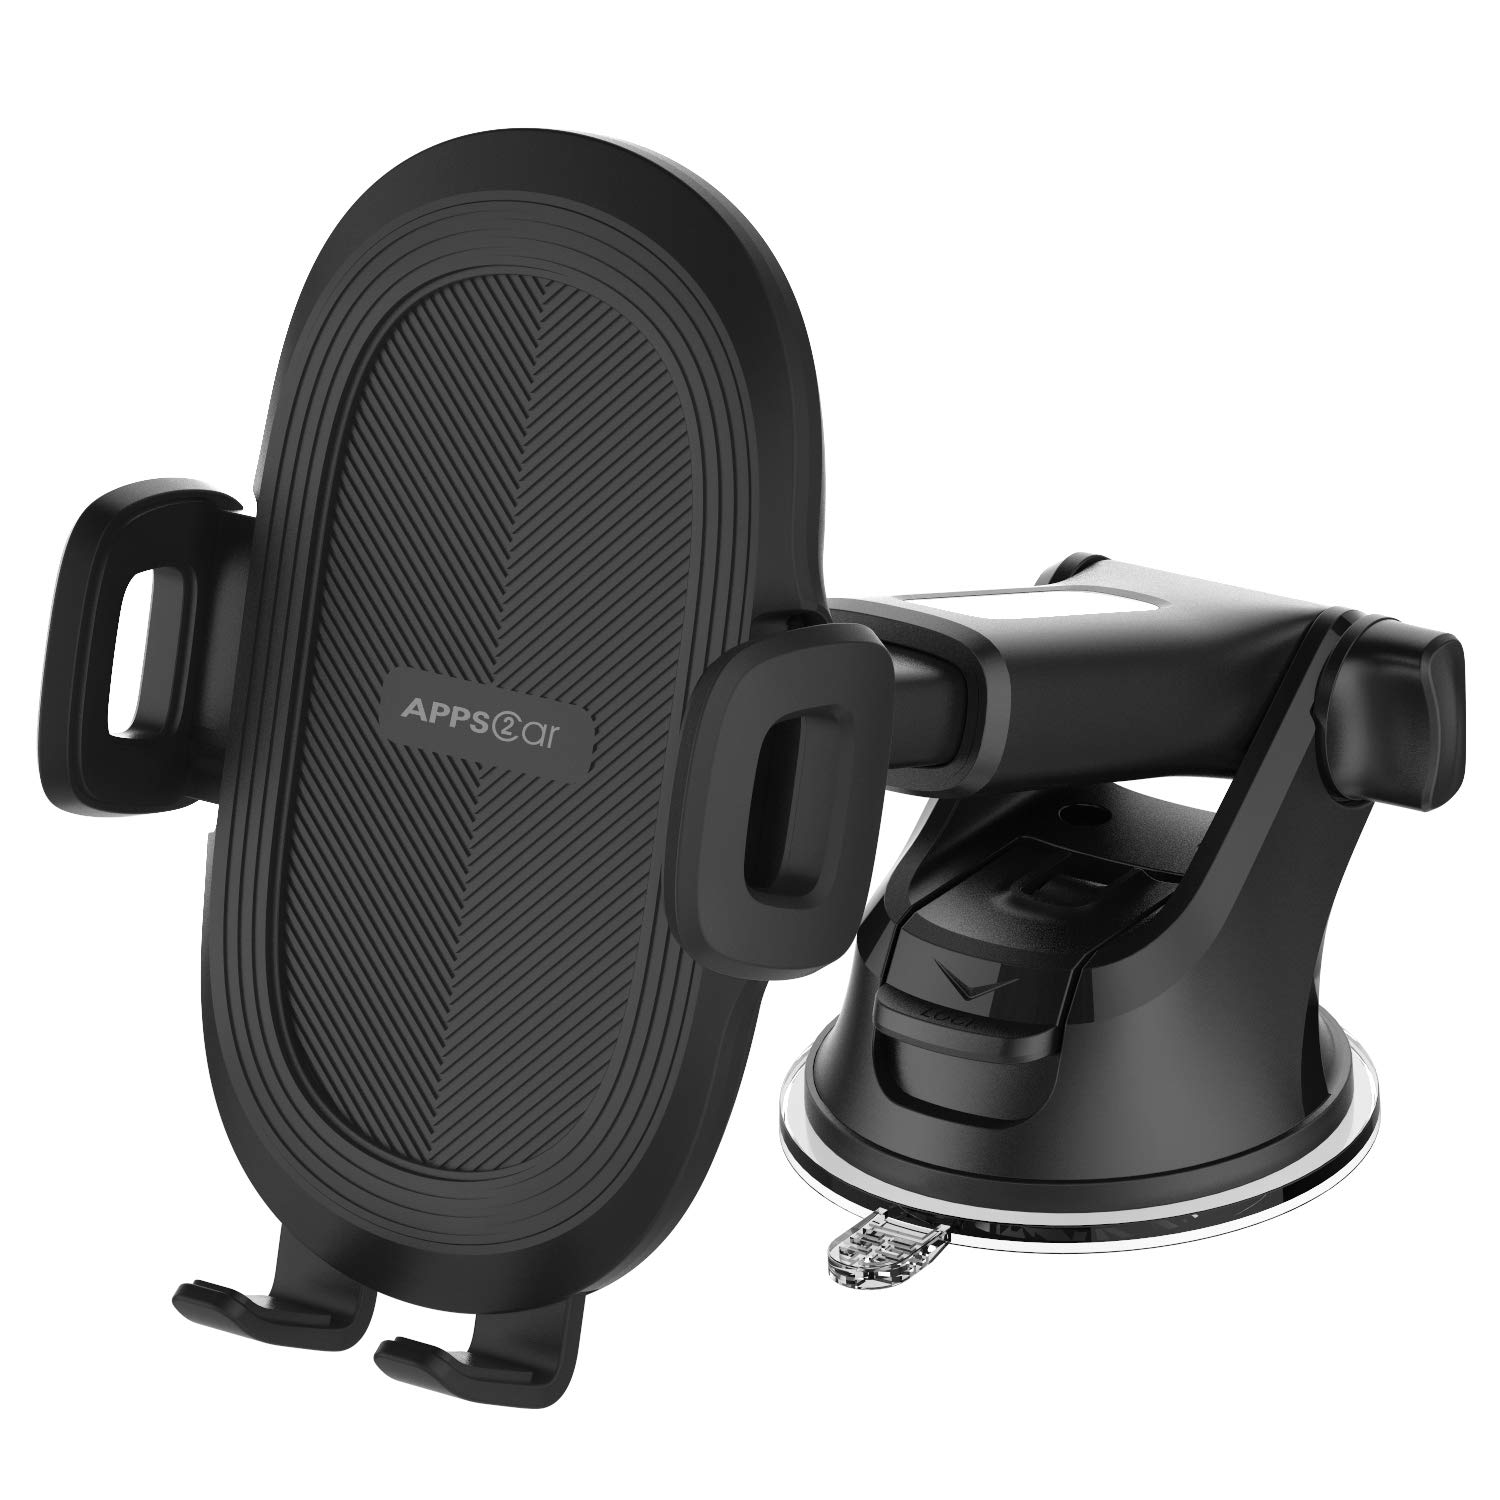 Phone Holder for Car, APPS2Car Universal Dashboard & Windshield Suction Cup Car Phone Mount with Strong Sticky Gel Pad,Compatible W/iPhone Xs 8 Plus 7 Samsung Galaxy S10 E S9 S8 Plus&Other Smartphone